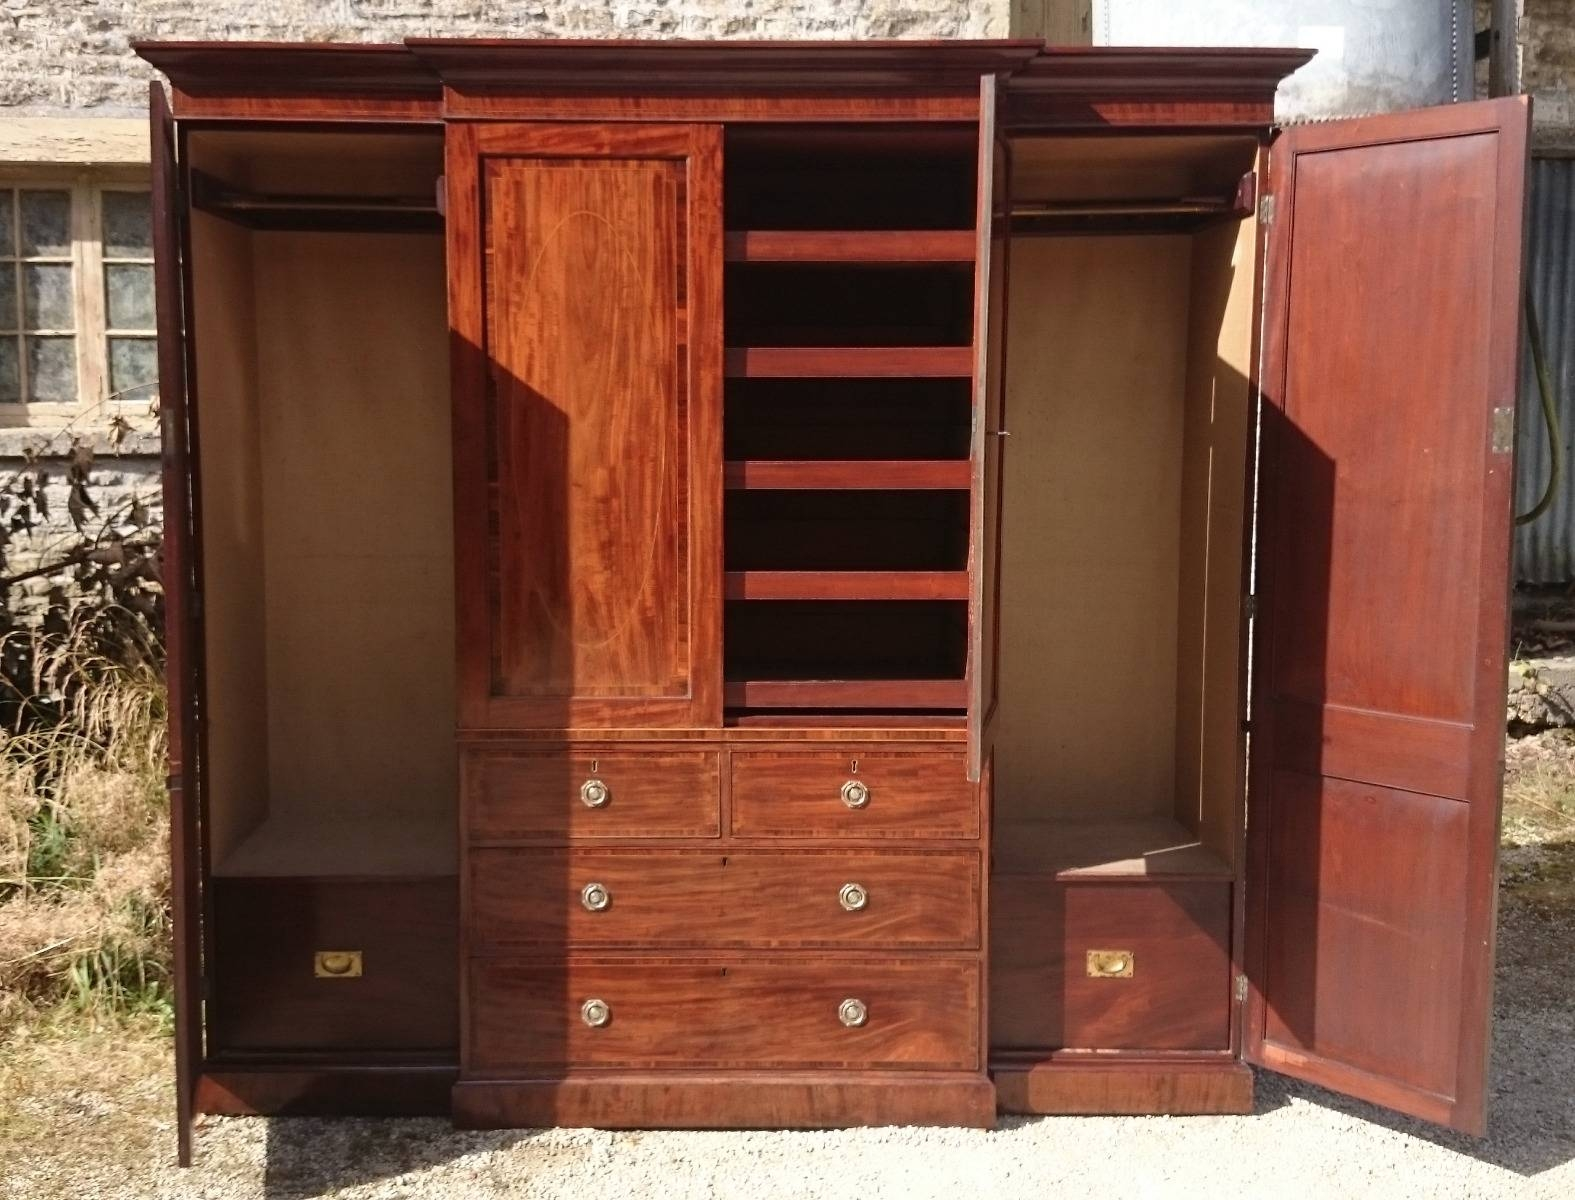 Antique Wardrobe & Linen Presses - Hares Antiques for Antique Breakfront Wardrobe (Image 6 of 30)